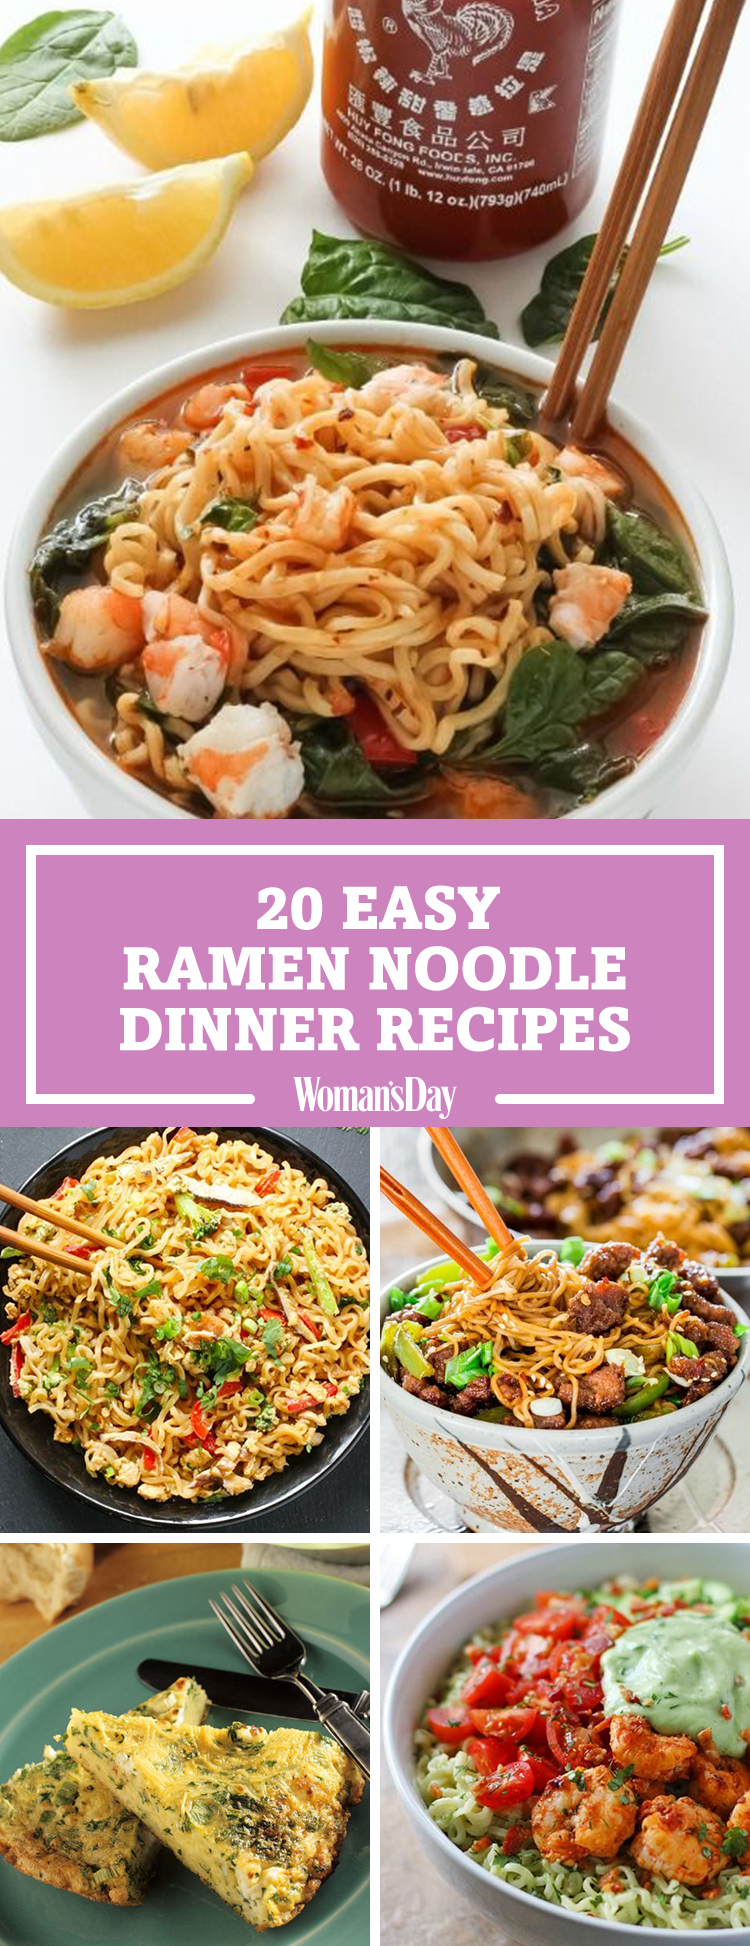 20 easy ramen noodle recipes best recipes with ramen noodles